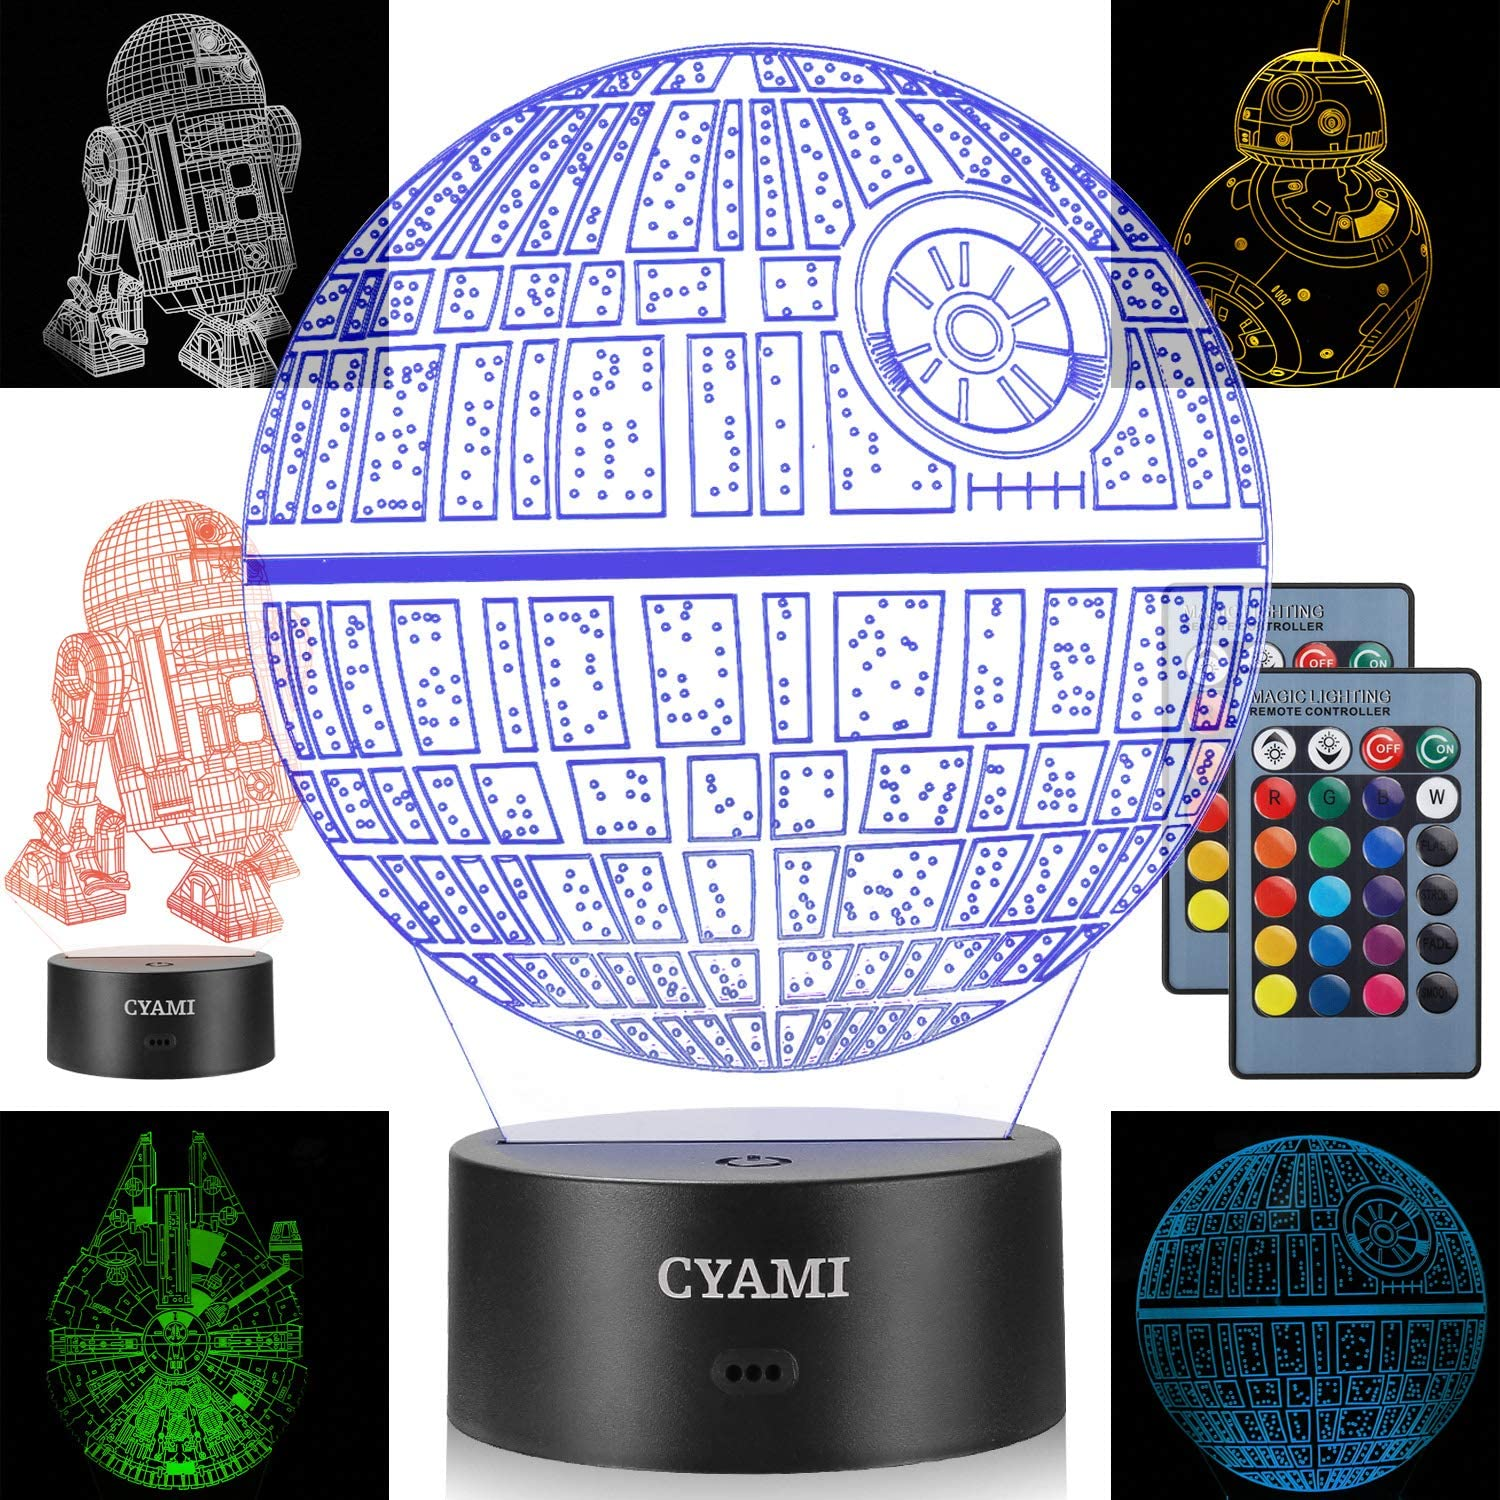 3D Illusion Star Wars Night Light for Kids, 4 Pattern and 7 Color Change Night Light - Perfect Gifts for Birthday and Christmas, Great for Boys Girls Baby and Any Star Wars Fans (Set 1)